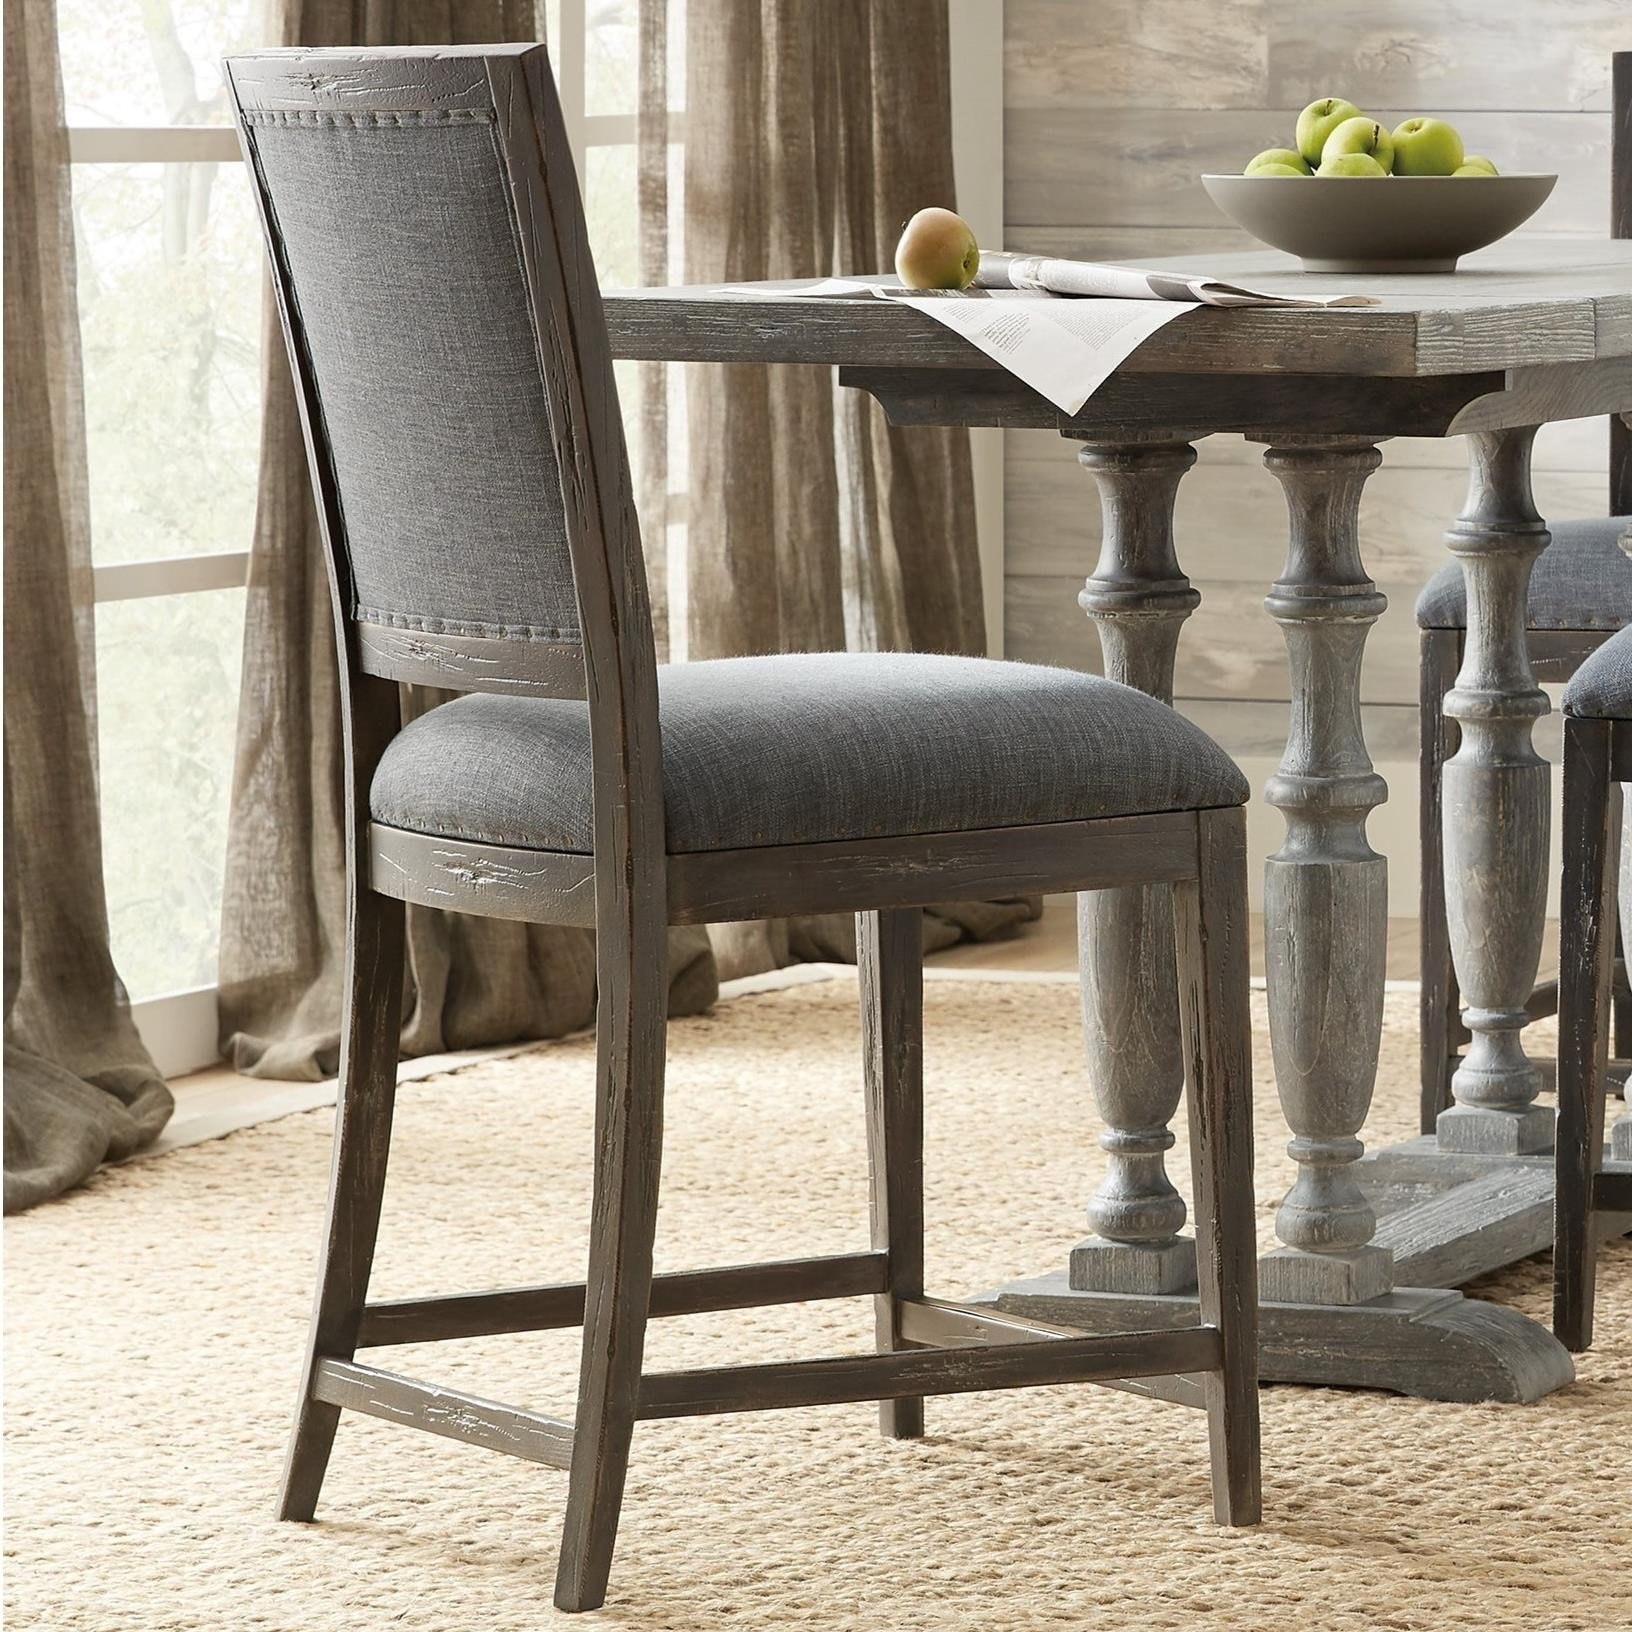 Hooker Furniture Beaumont Relaxed Vintage Counter Stool